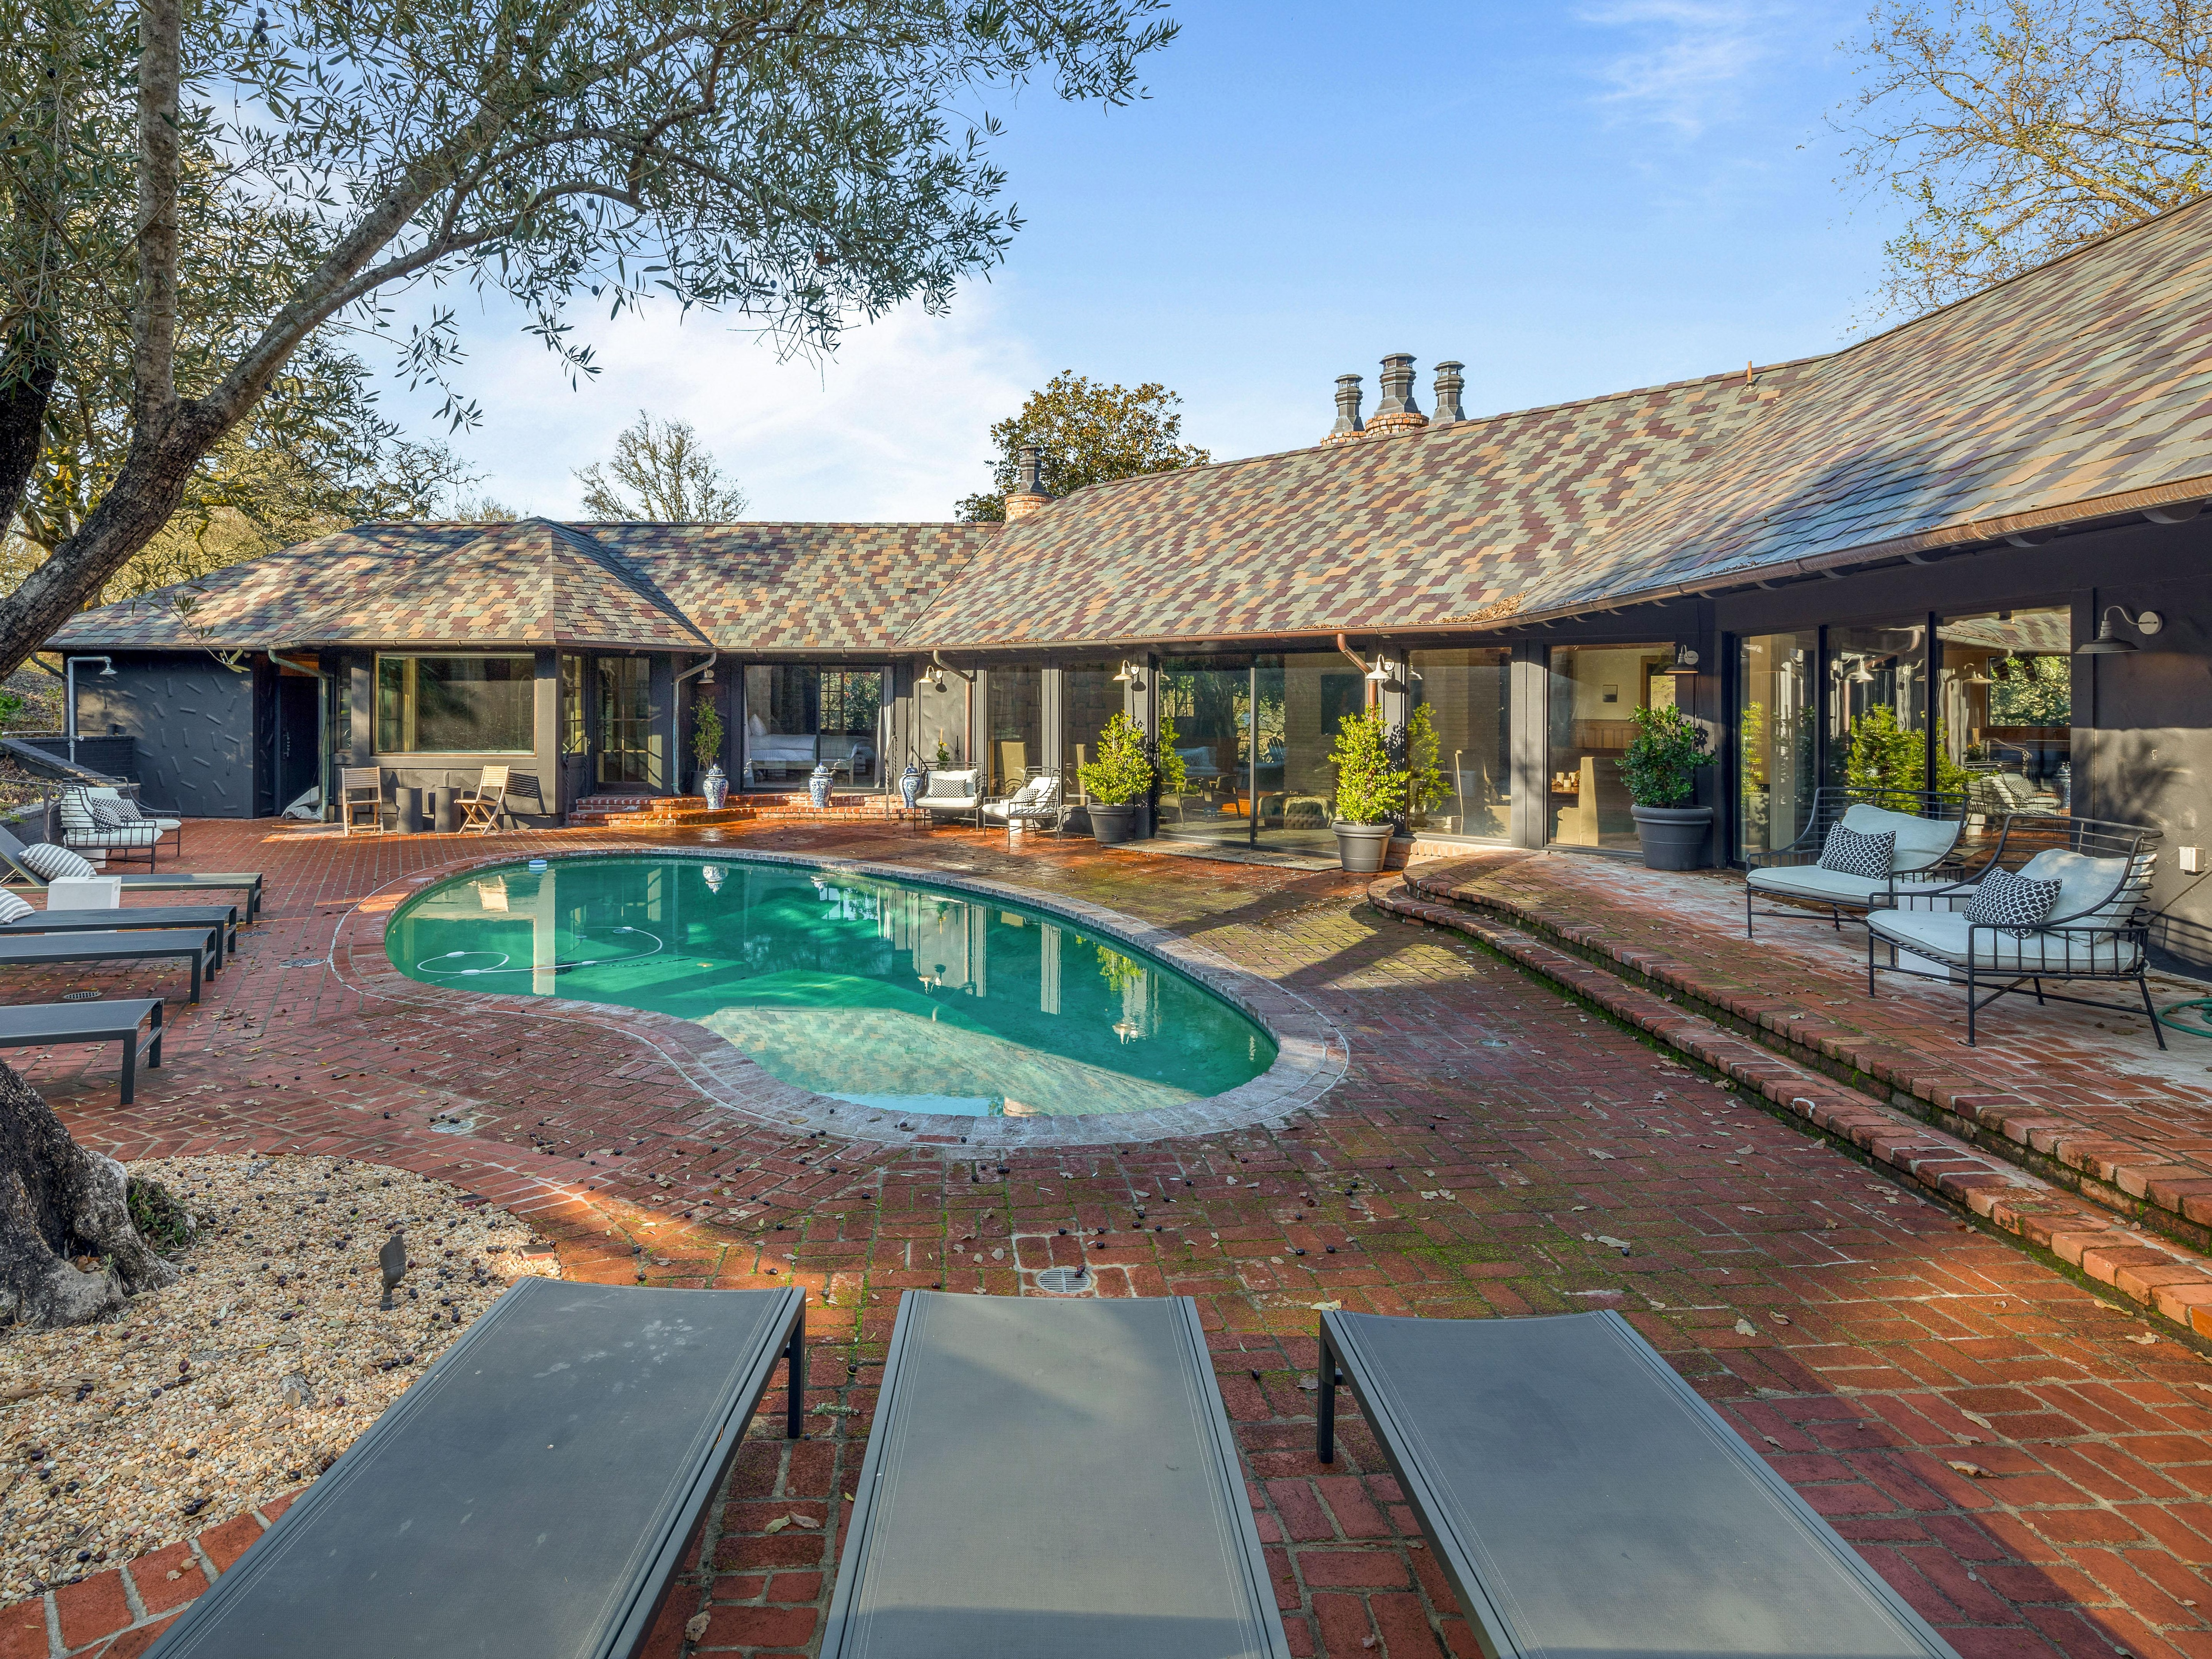 This property features a private garden oasis with a pool.